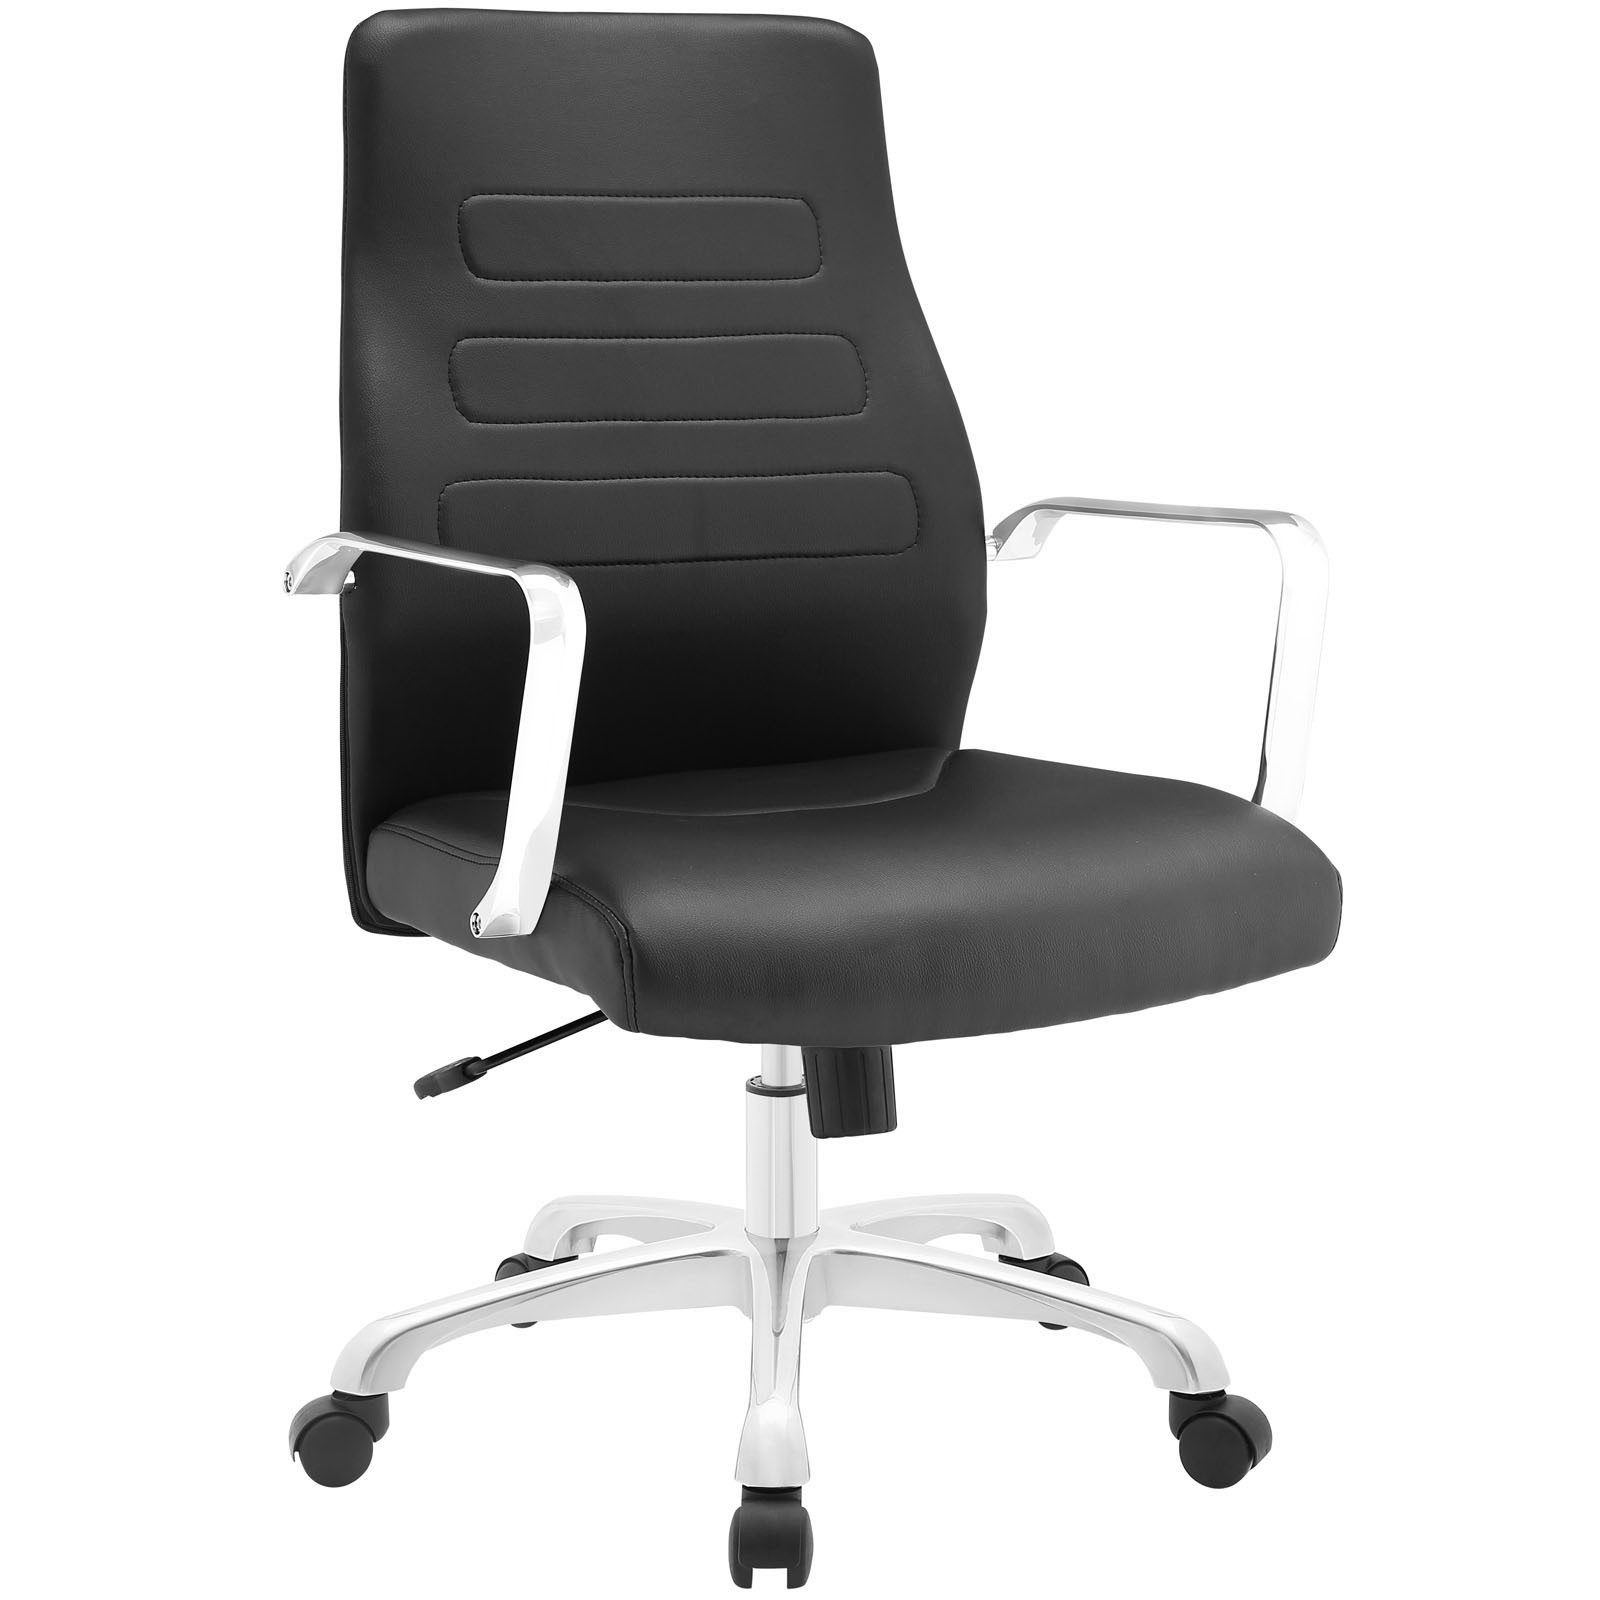 Best ideas about Cheap Desk Chair . Save or Pin Cheap Chair Discount Chairs fice Furniture Chairs Now.